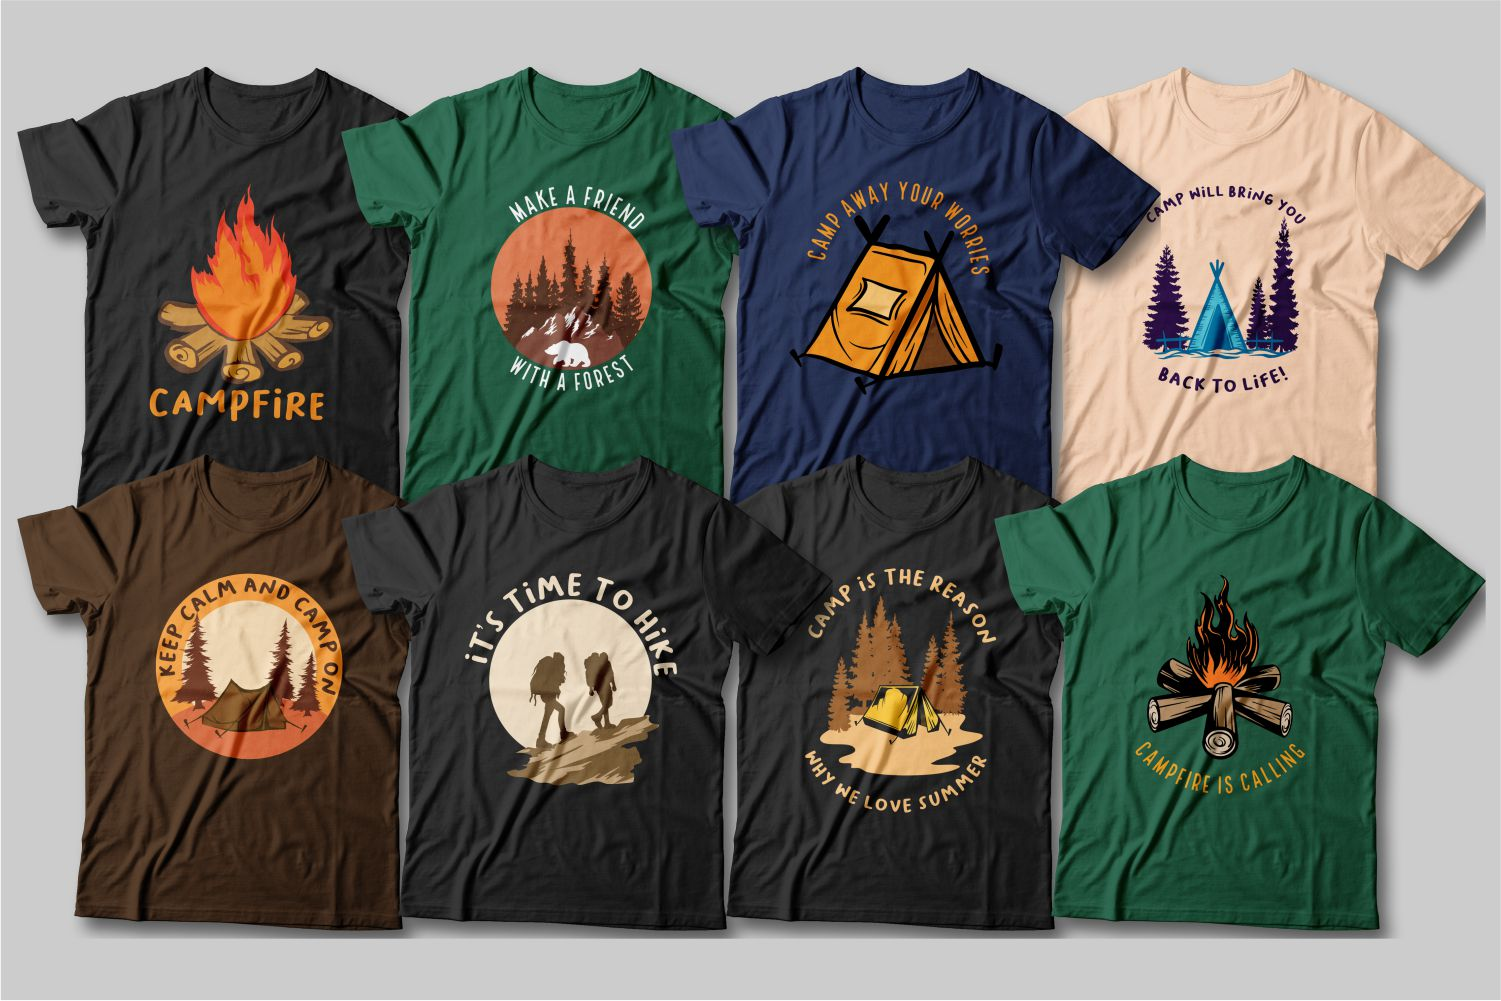 Graphic T-shirts for outdoor activities and hiking.